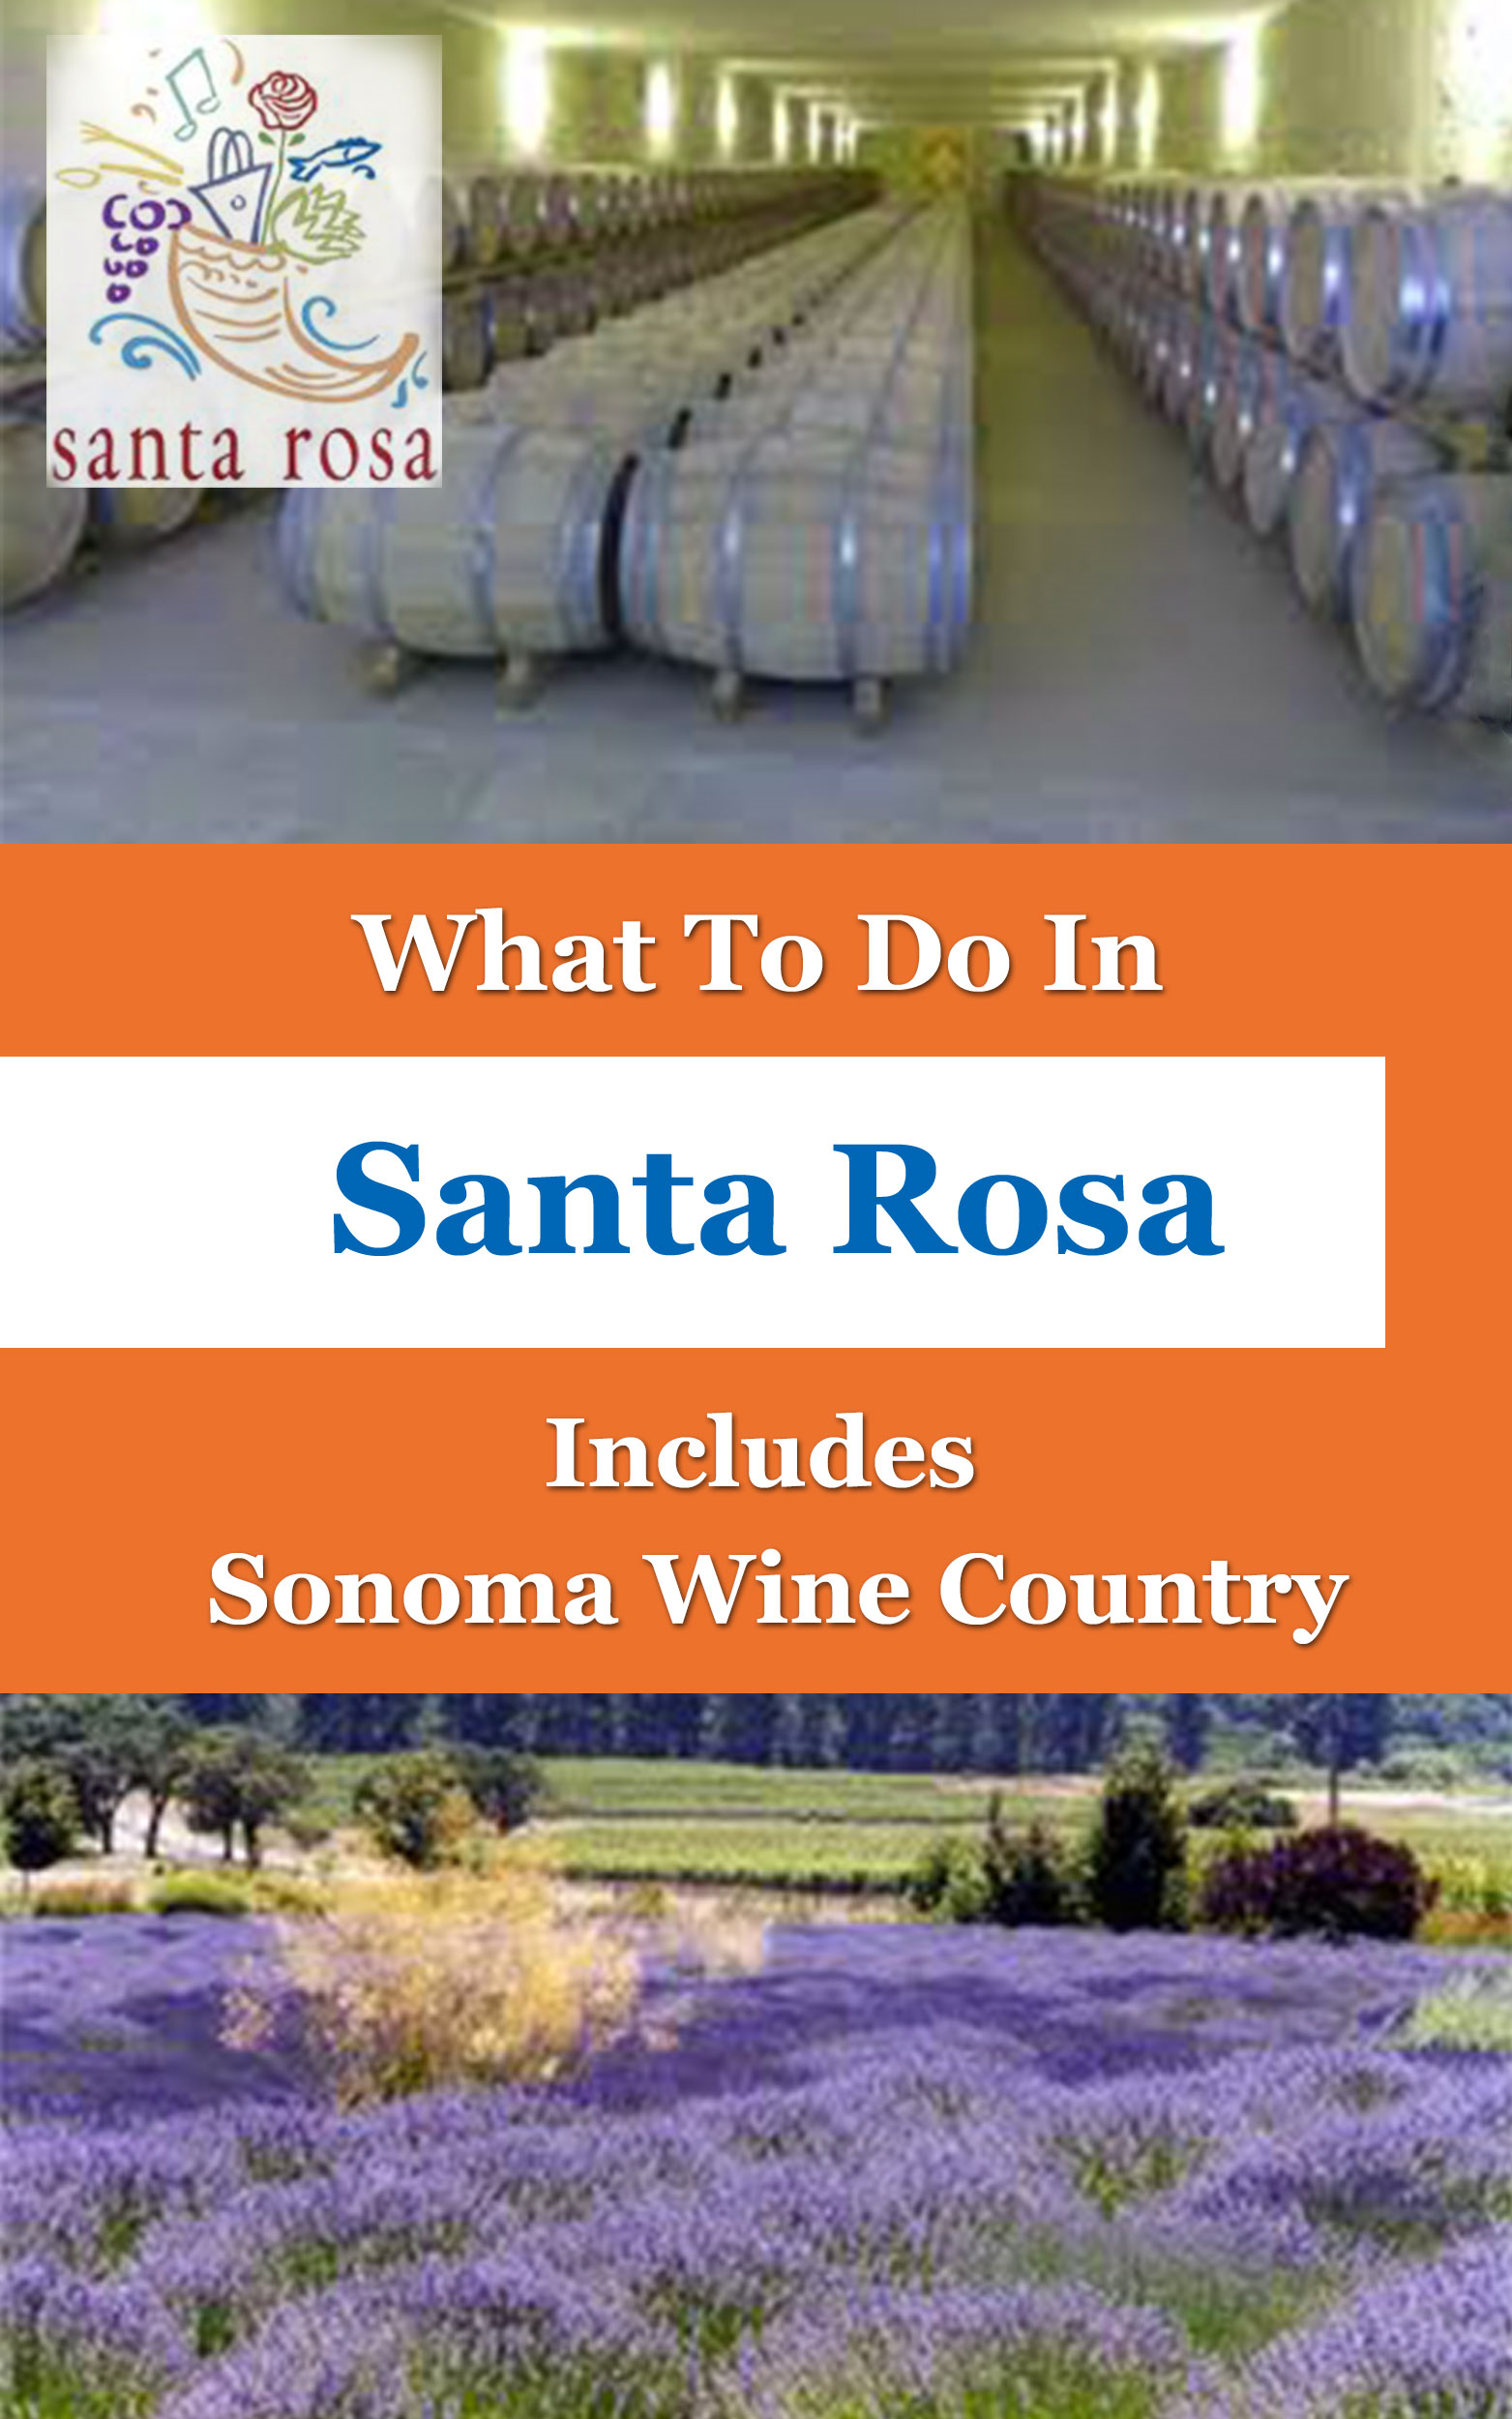 What To Do In Santa Rosa